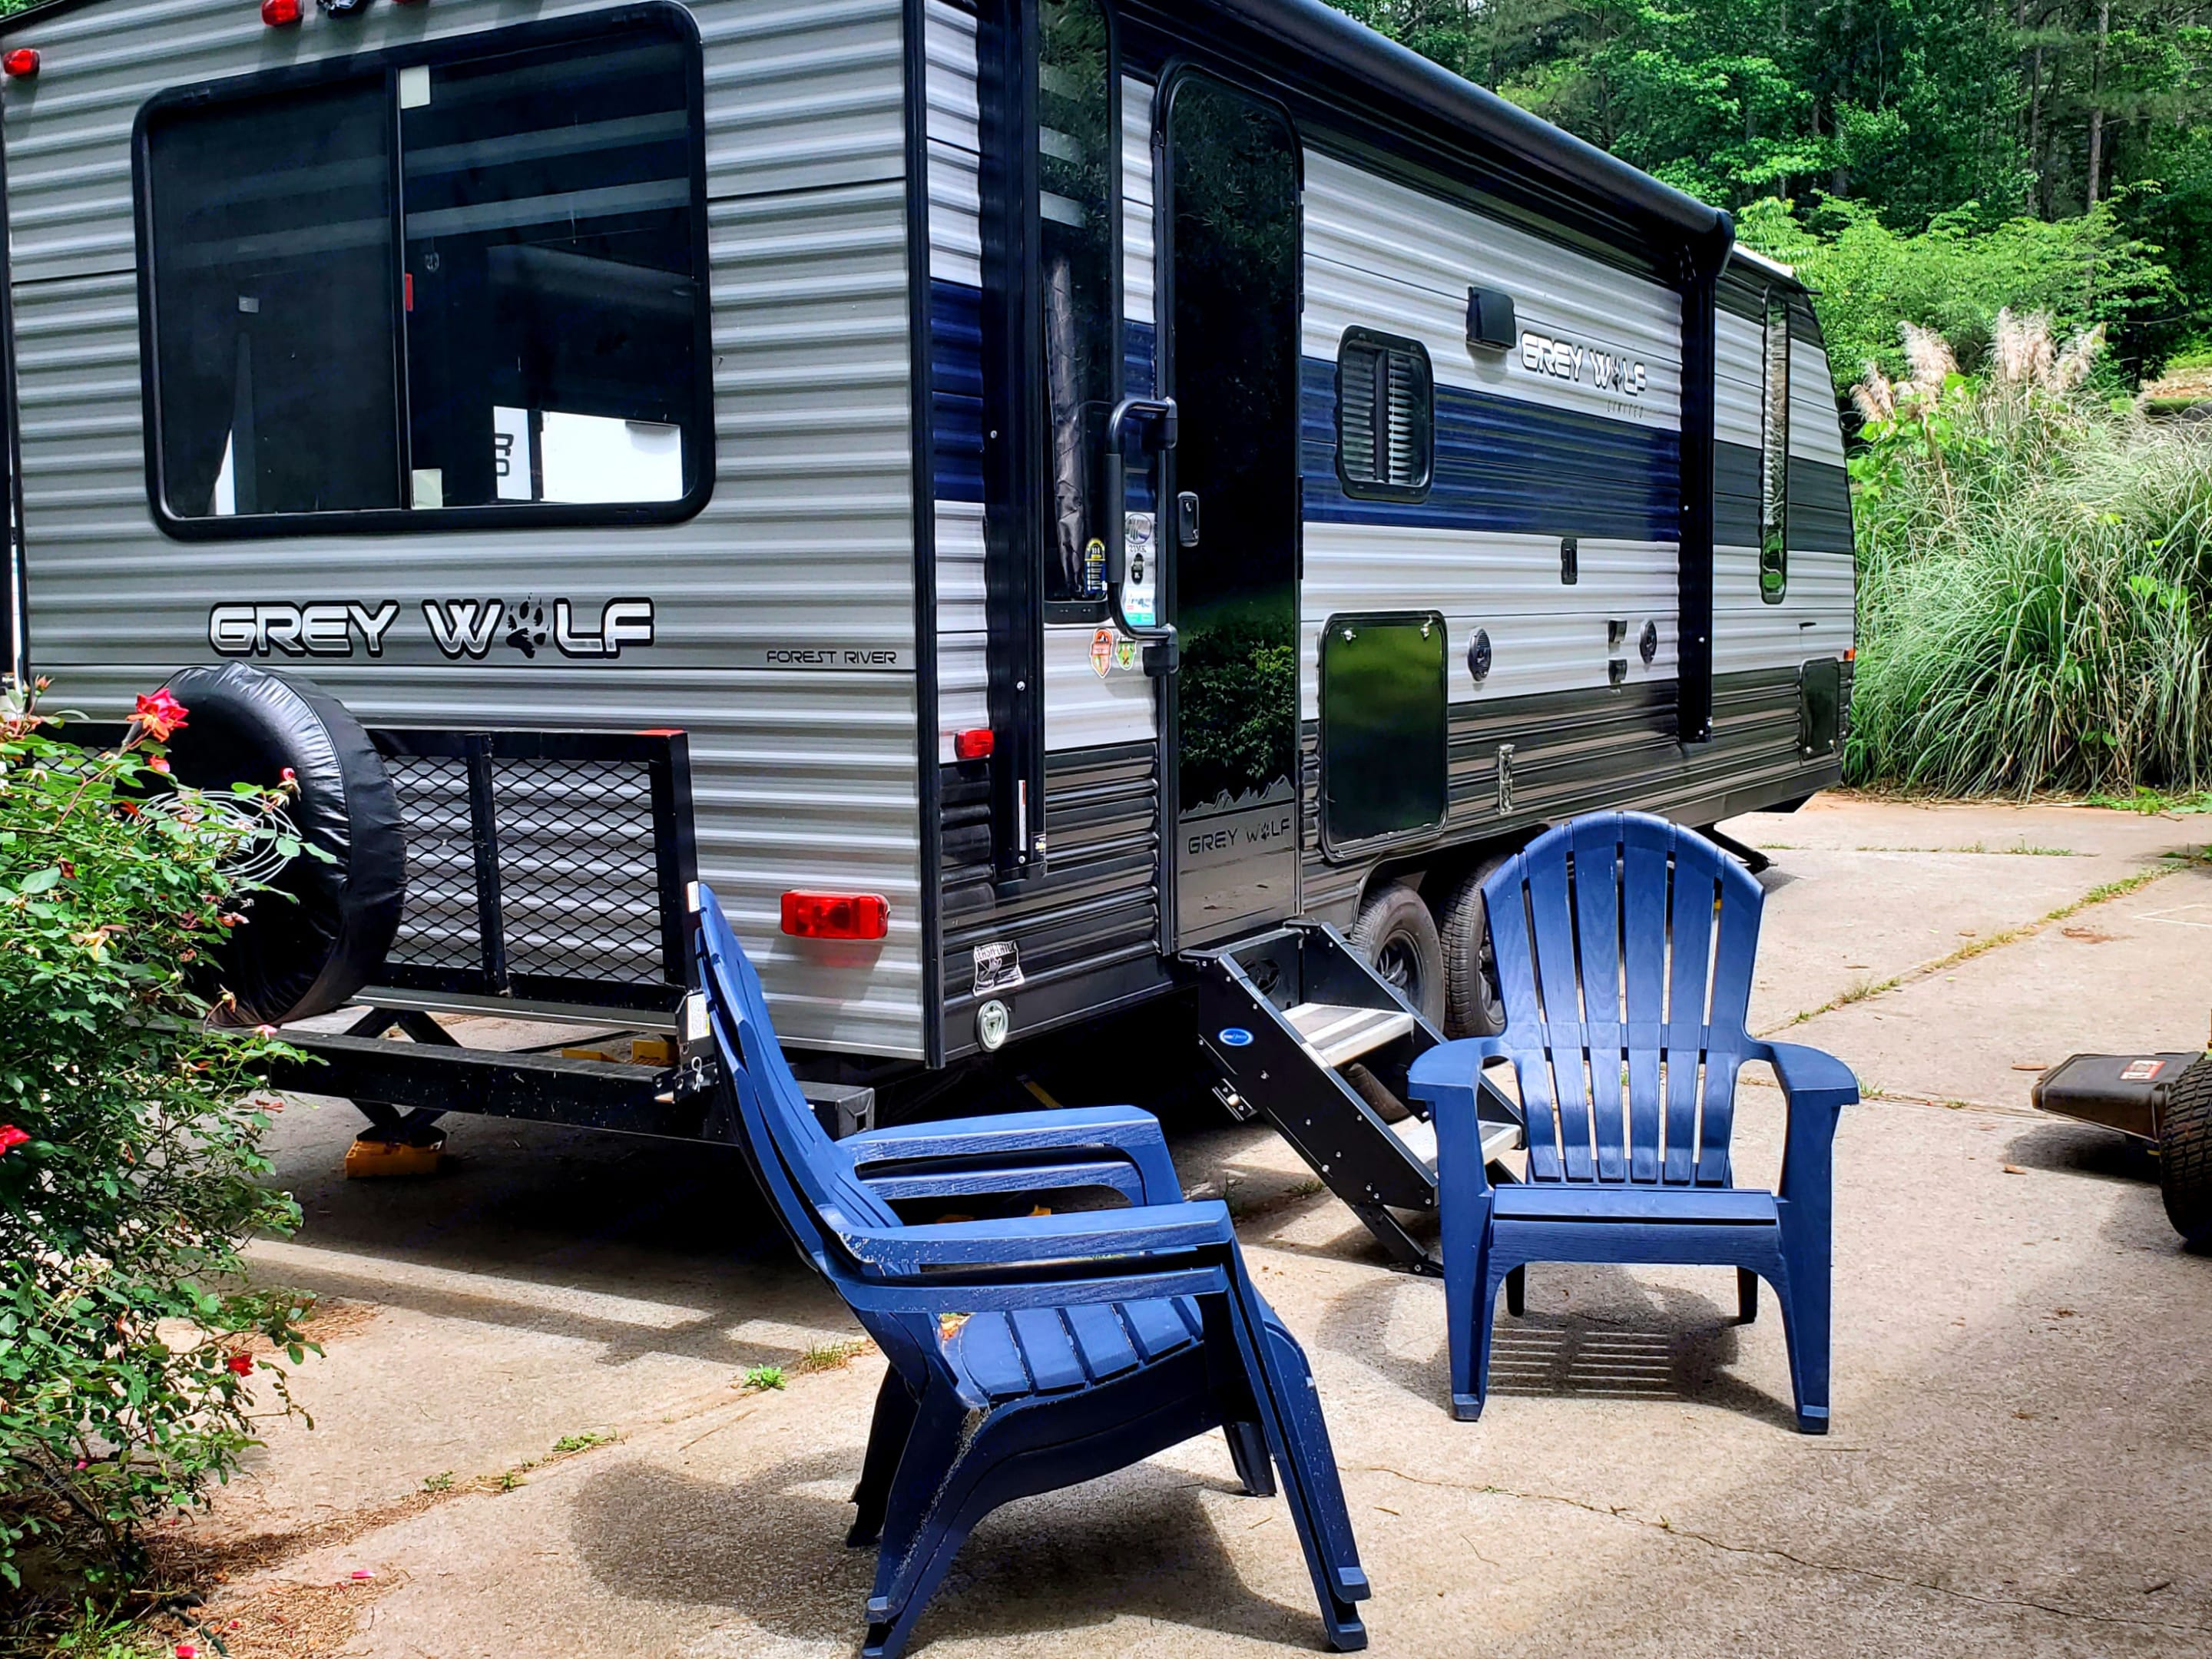 Chairs are not included in rental. Forest River Cherokee Grey Wolf 2021